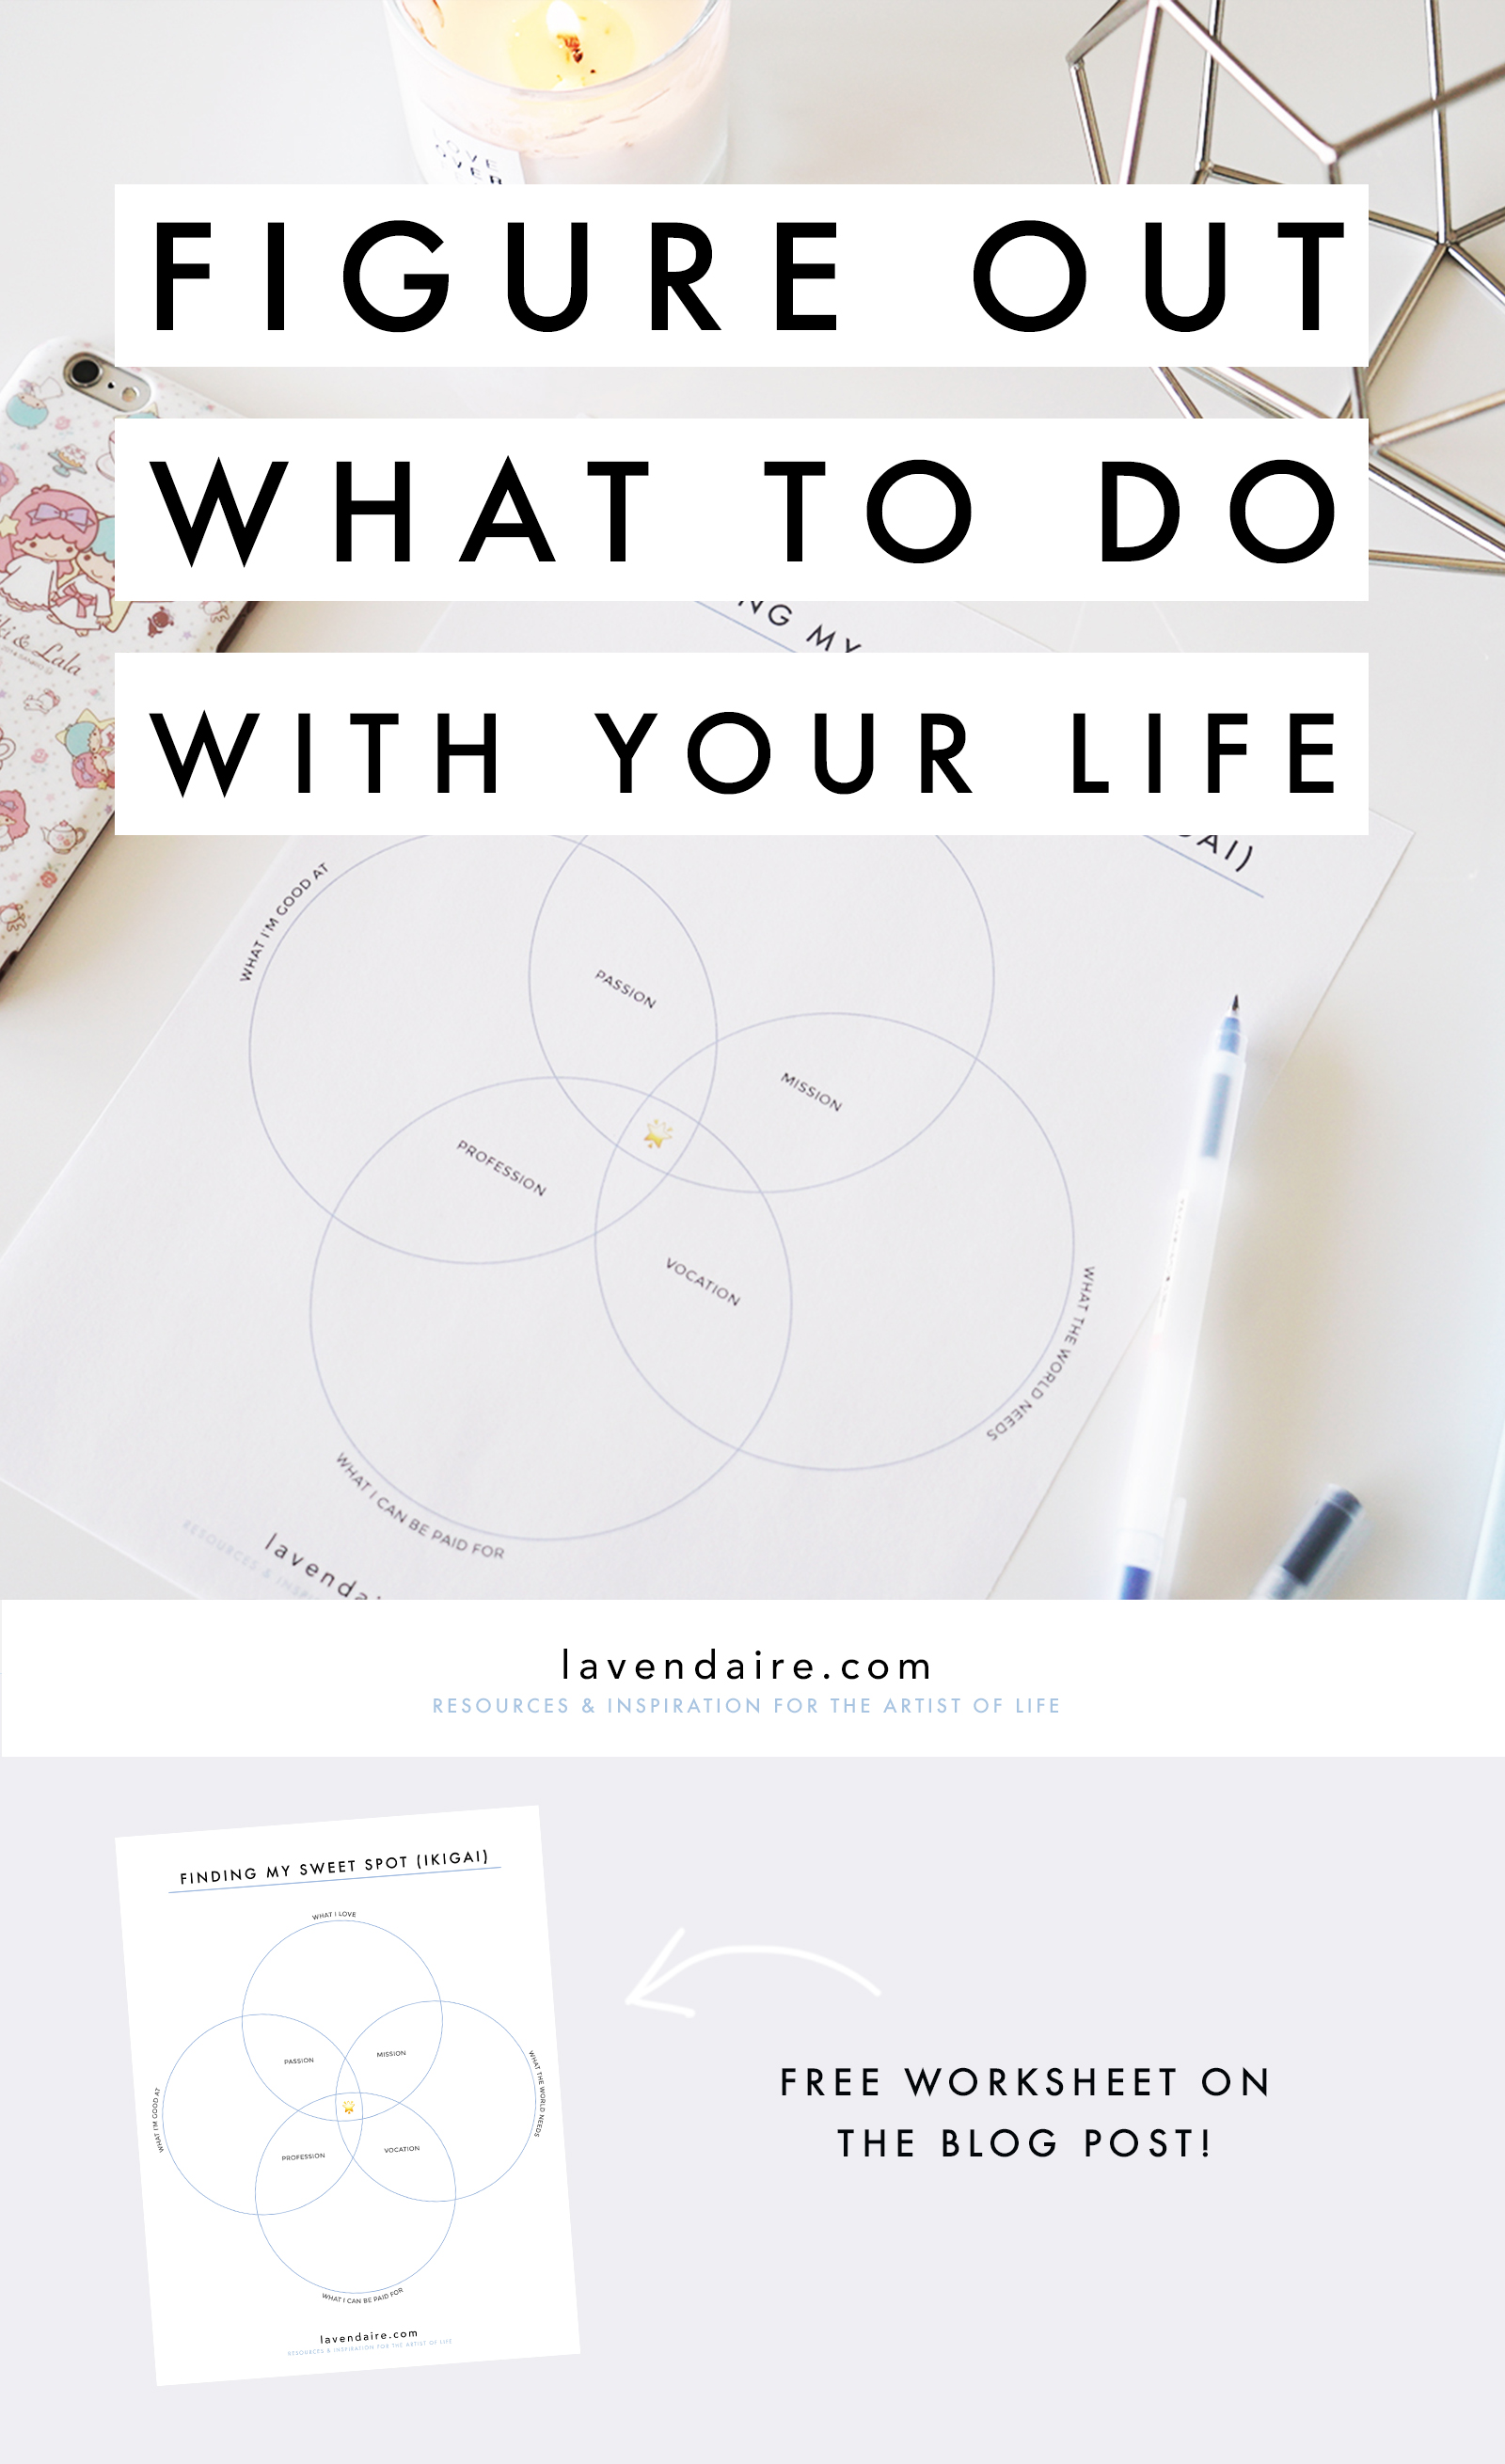 how to work out what to do with your life